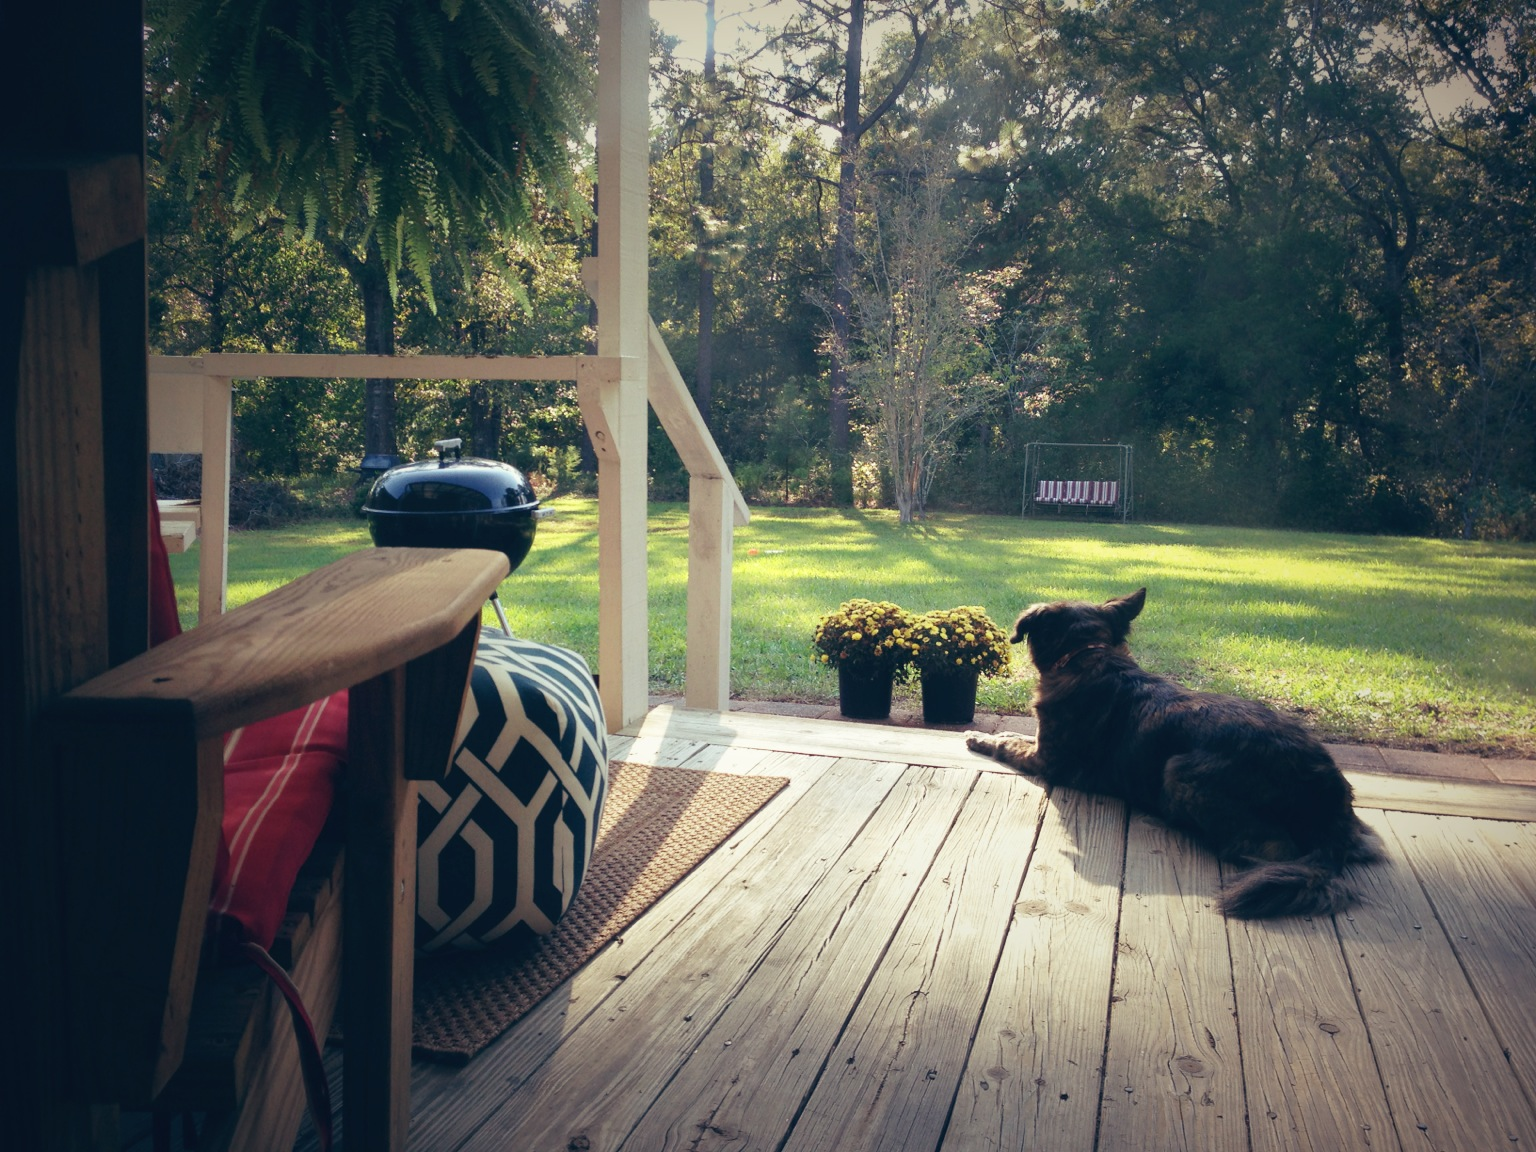 Maggie the dog lounging on a comfortable back porch as afternoon light peeks through the trees.